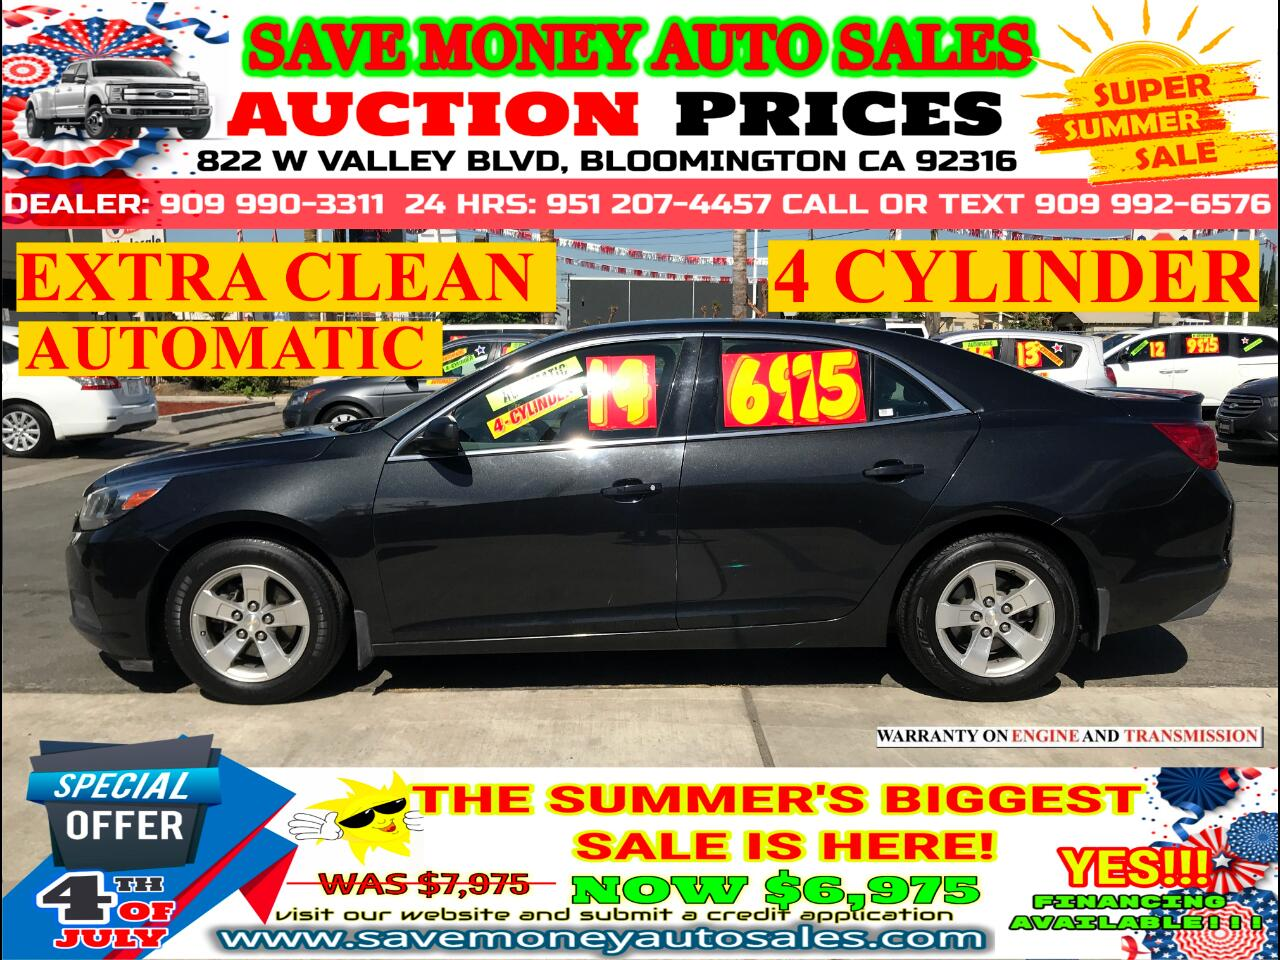 2014 Chevrolet Malibu LS> EXTRA CLEAN> 4 CYLDS > AUTOMATIC